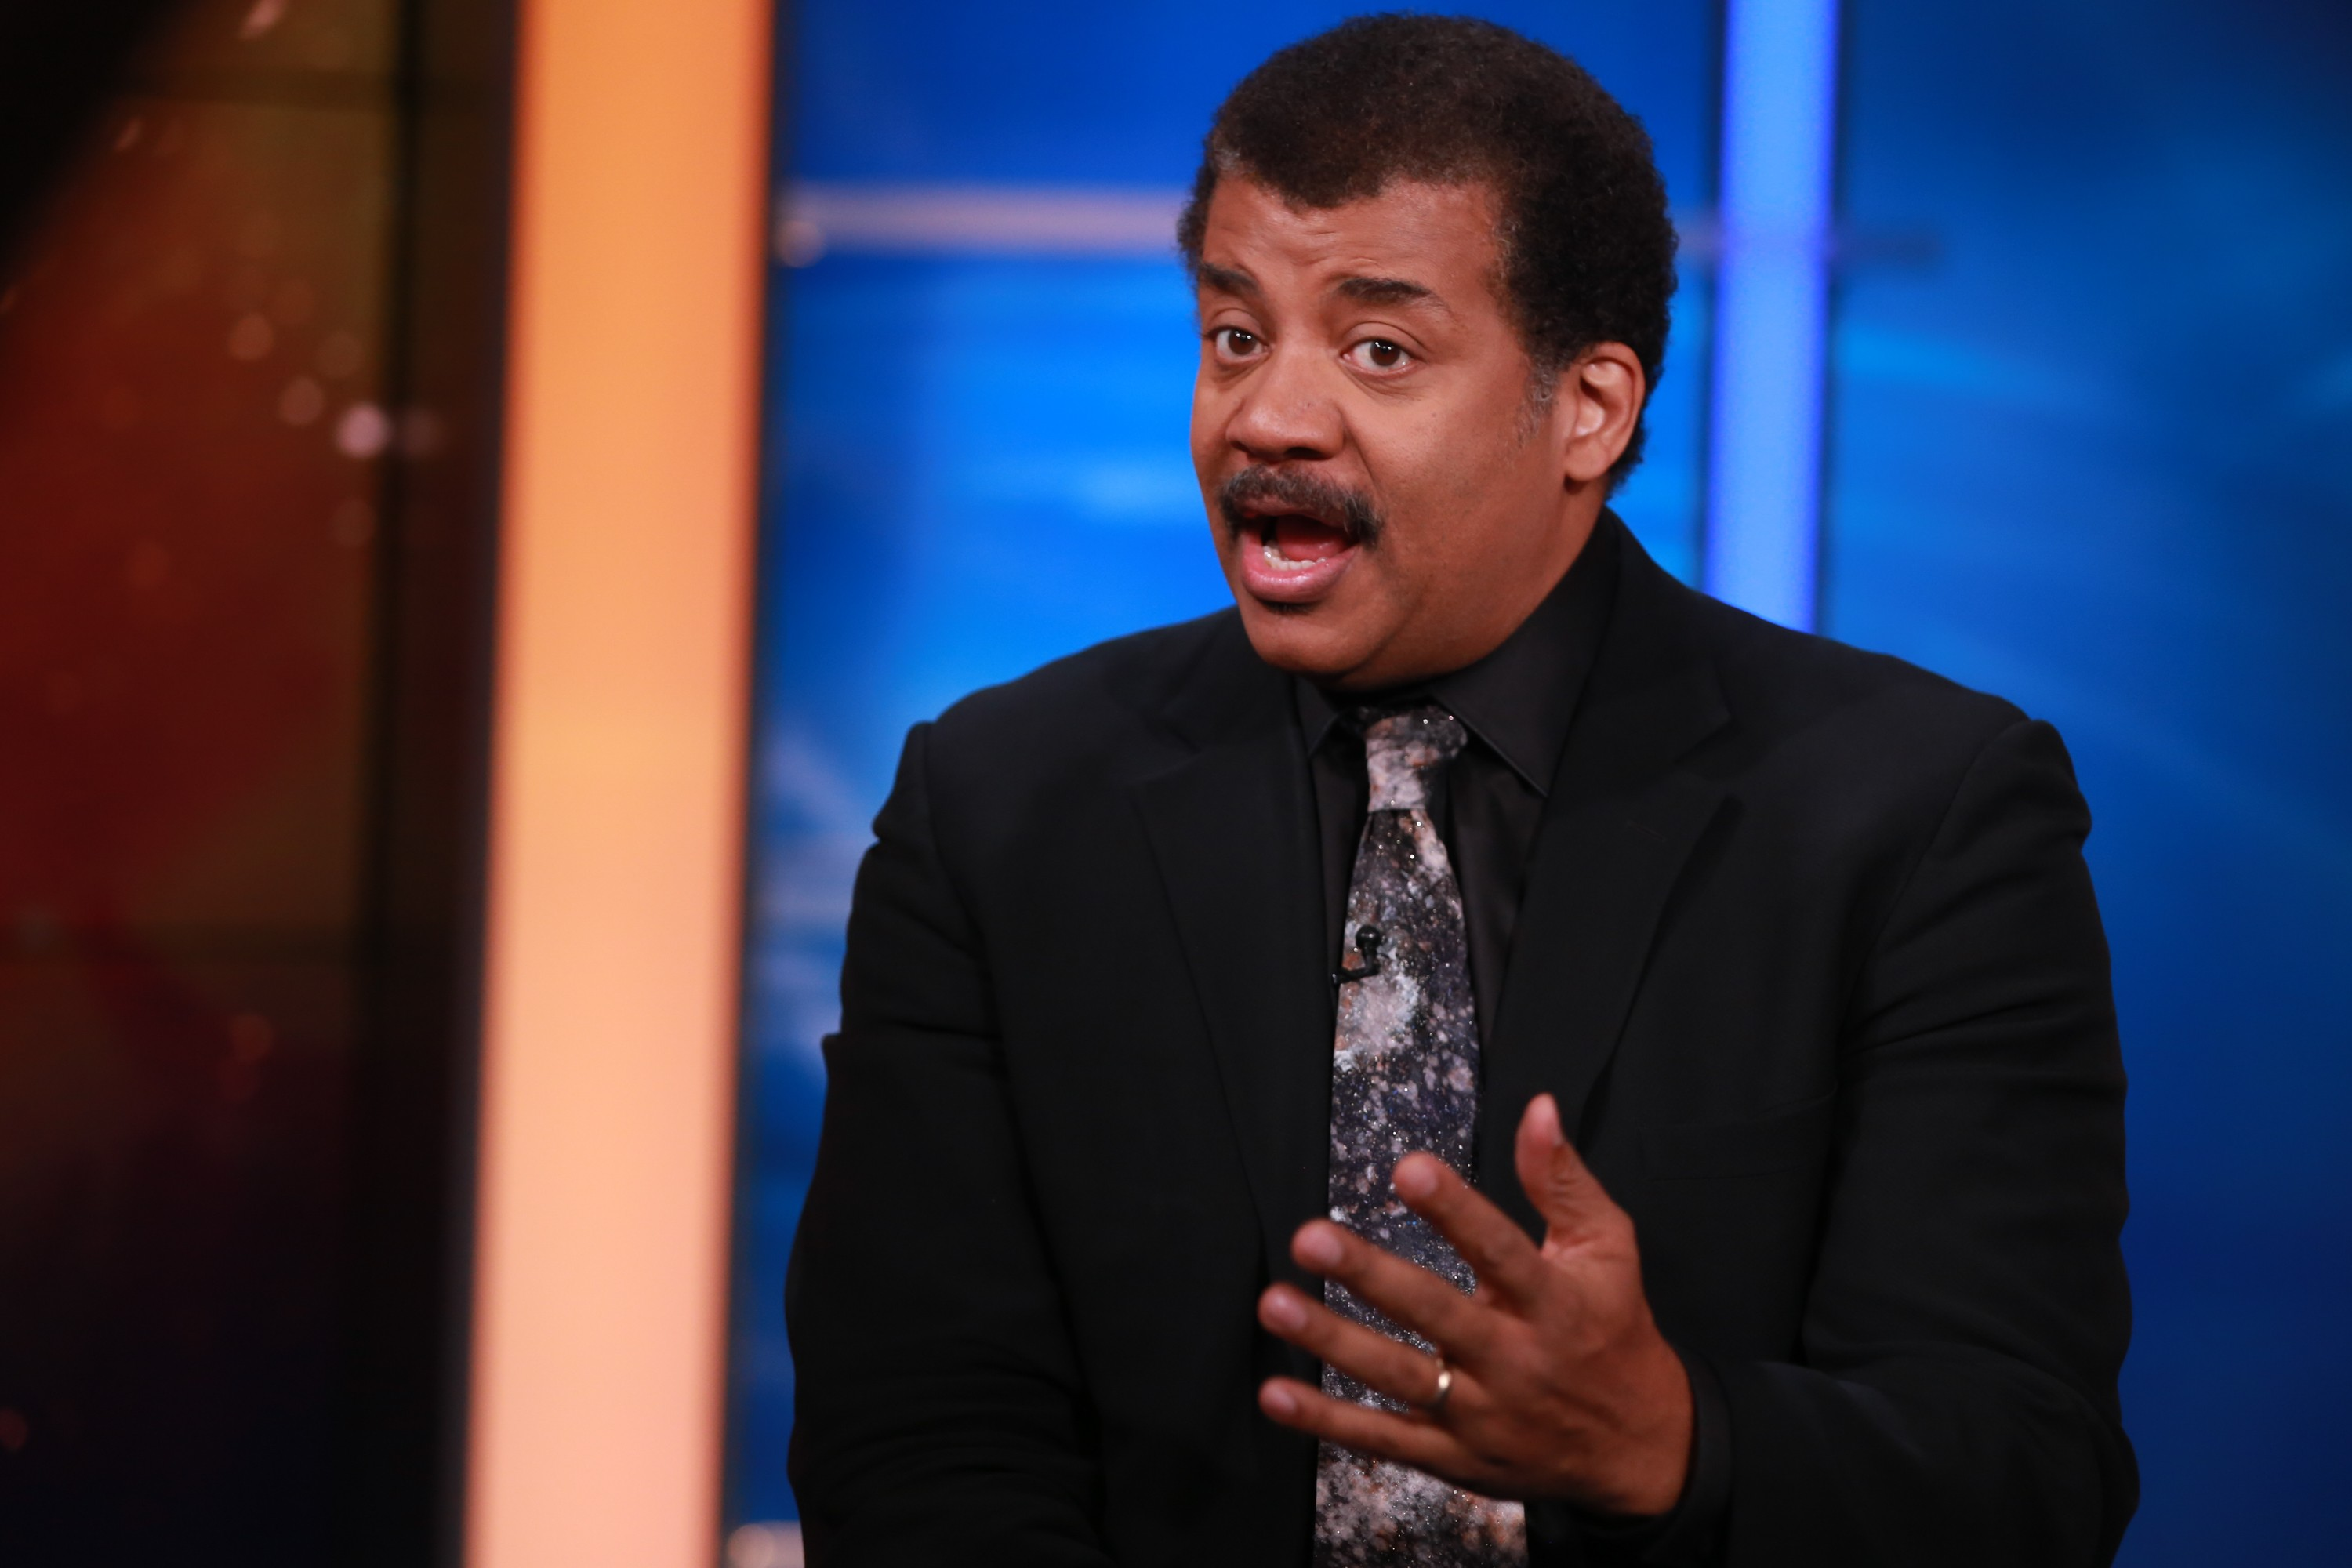 """SQUAWK BOX -- Pictured:  """"StarTalk""""'s Neil deGrasse Tyson, Director of the Hayden Planetarium in New York City, in an interview on October 23, 2015 -- (Photo by: Katie Kramer/CNBC/NBCU Photo Bank via Getty Images)"""